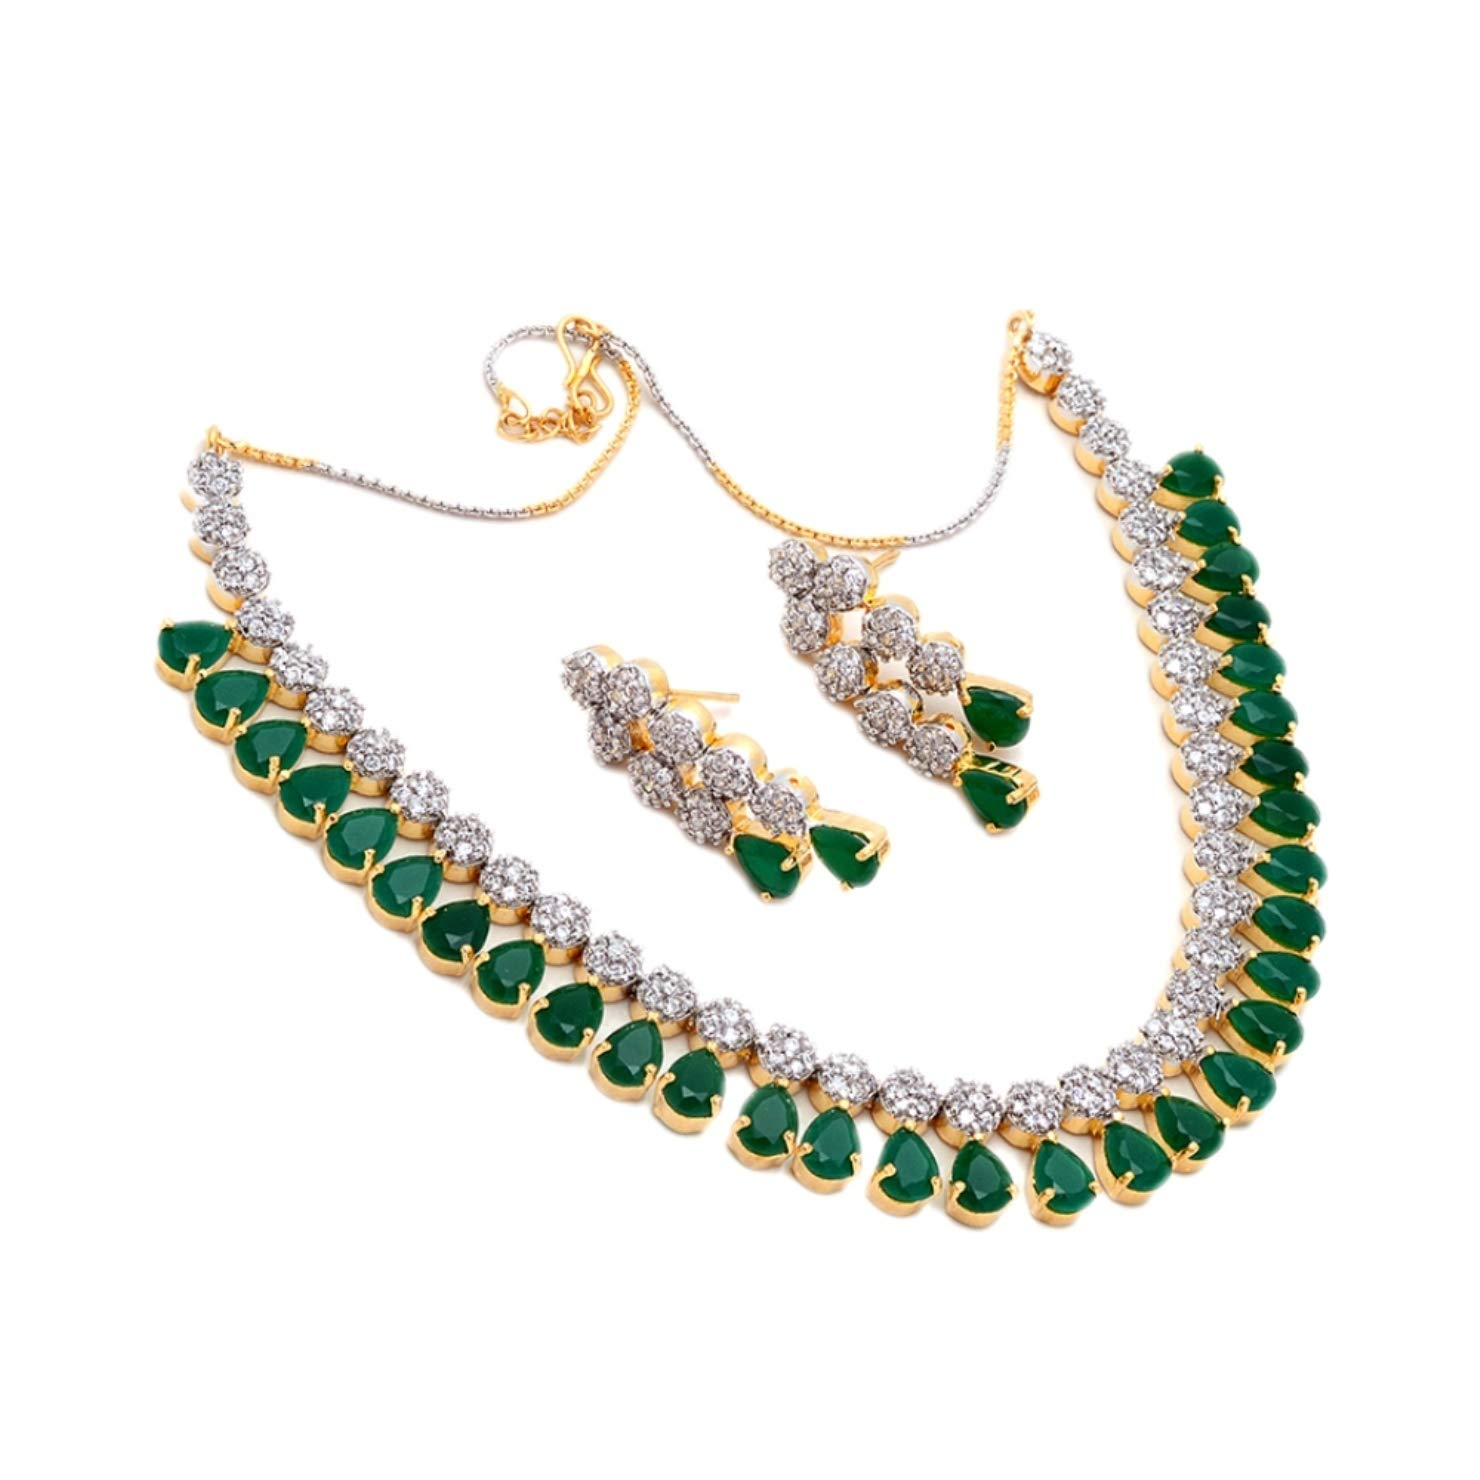 Buy Jewar Real Jewelry Gold Plated Emerald Gemstone Bridal